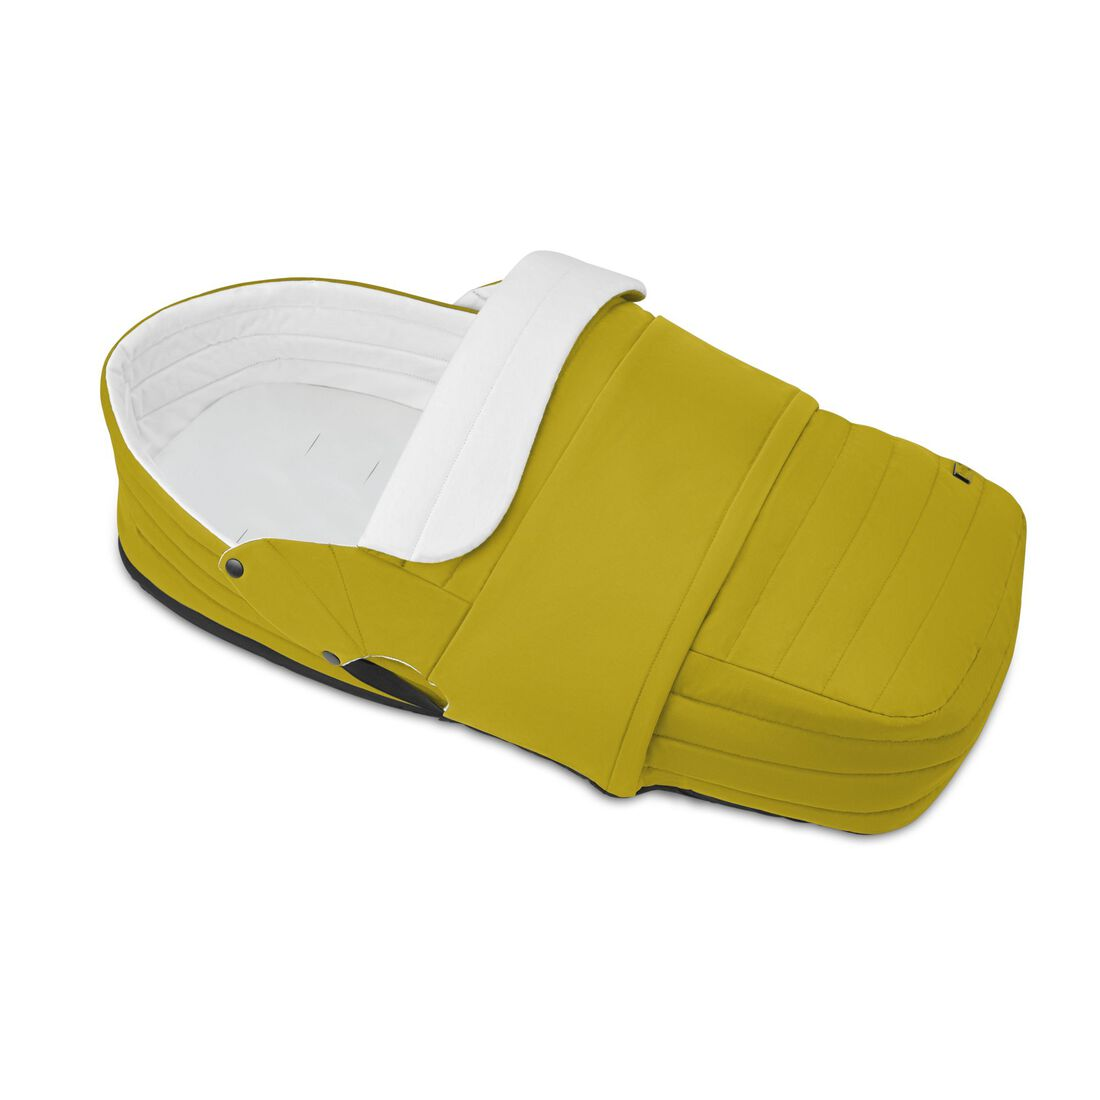 CYBEX Lite Cot - Mustard Yellow in Mustard Yellow large image number 3